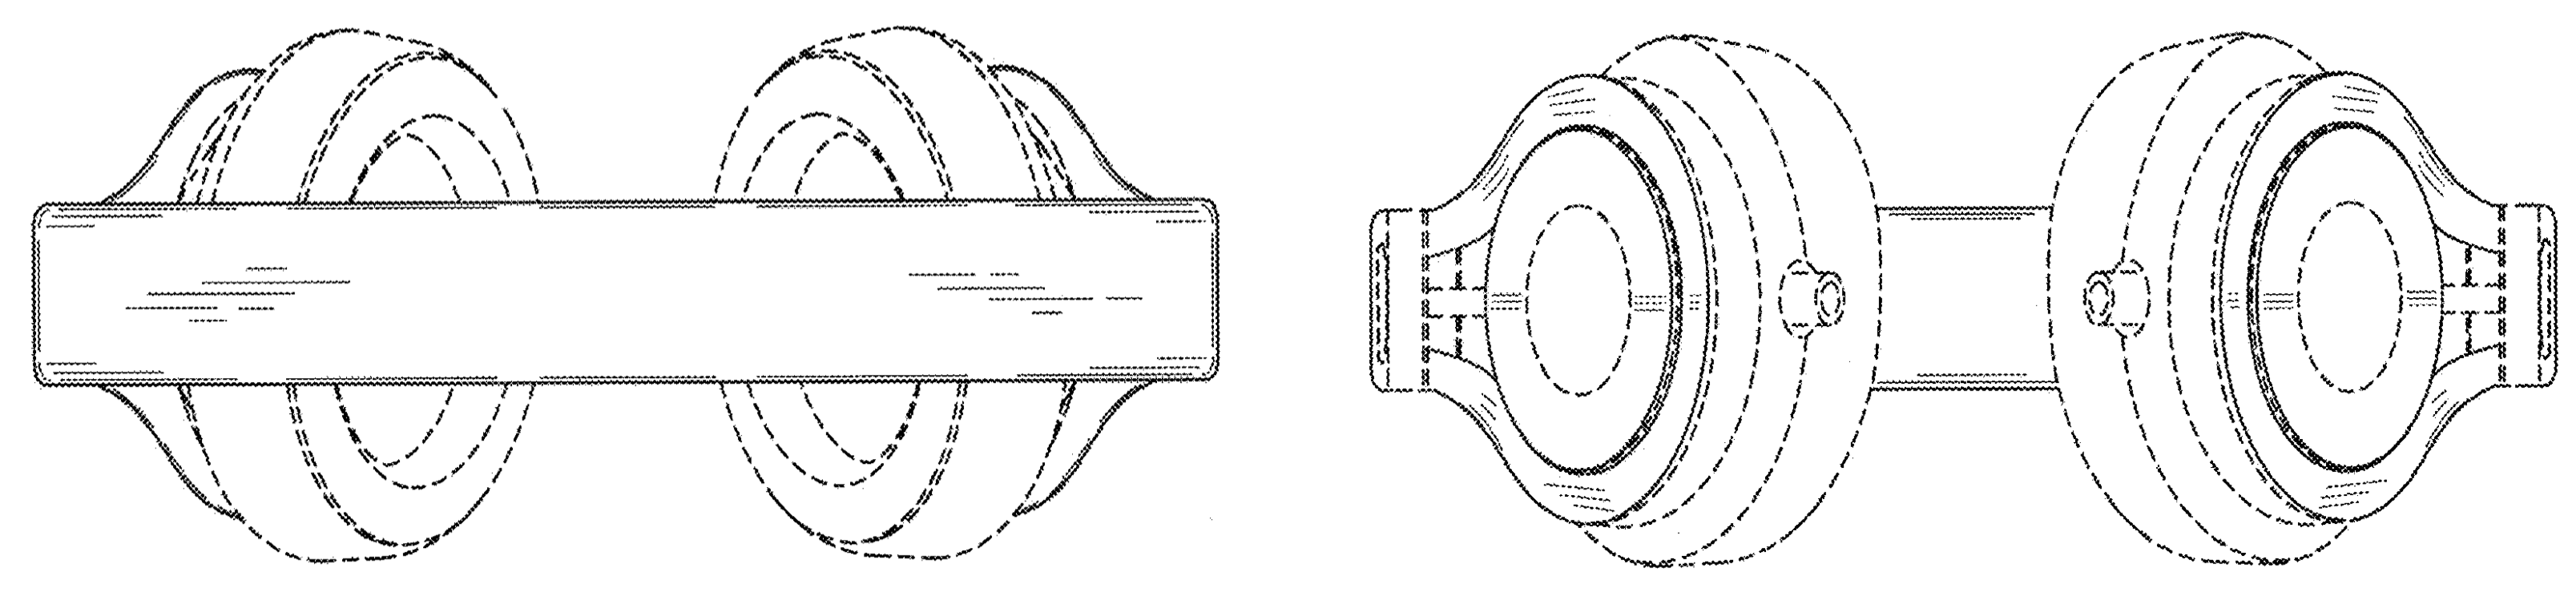 Apple patent Beats Mixr drawing 002